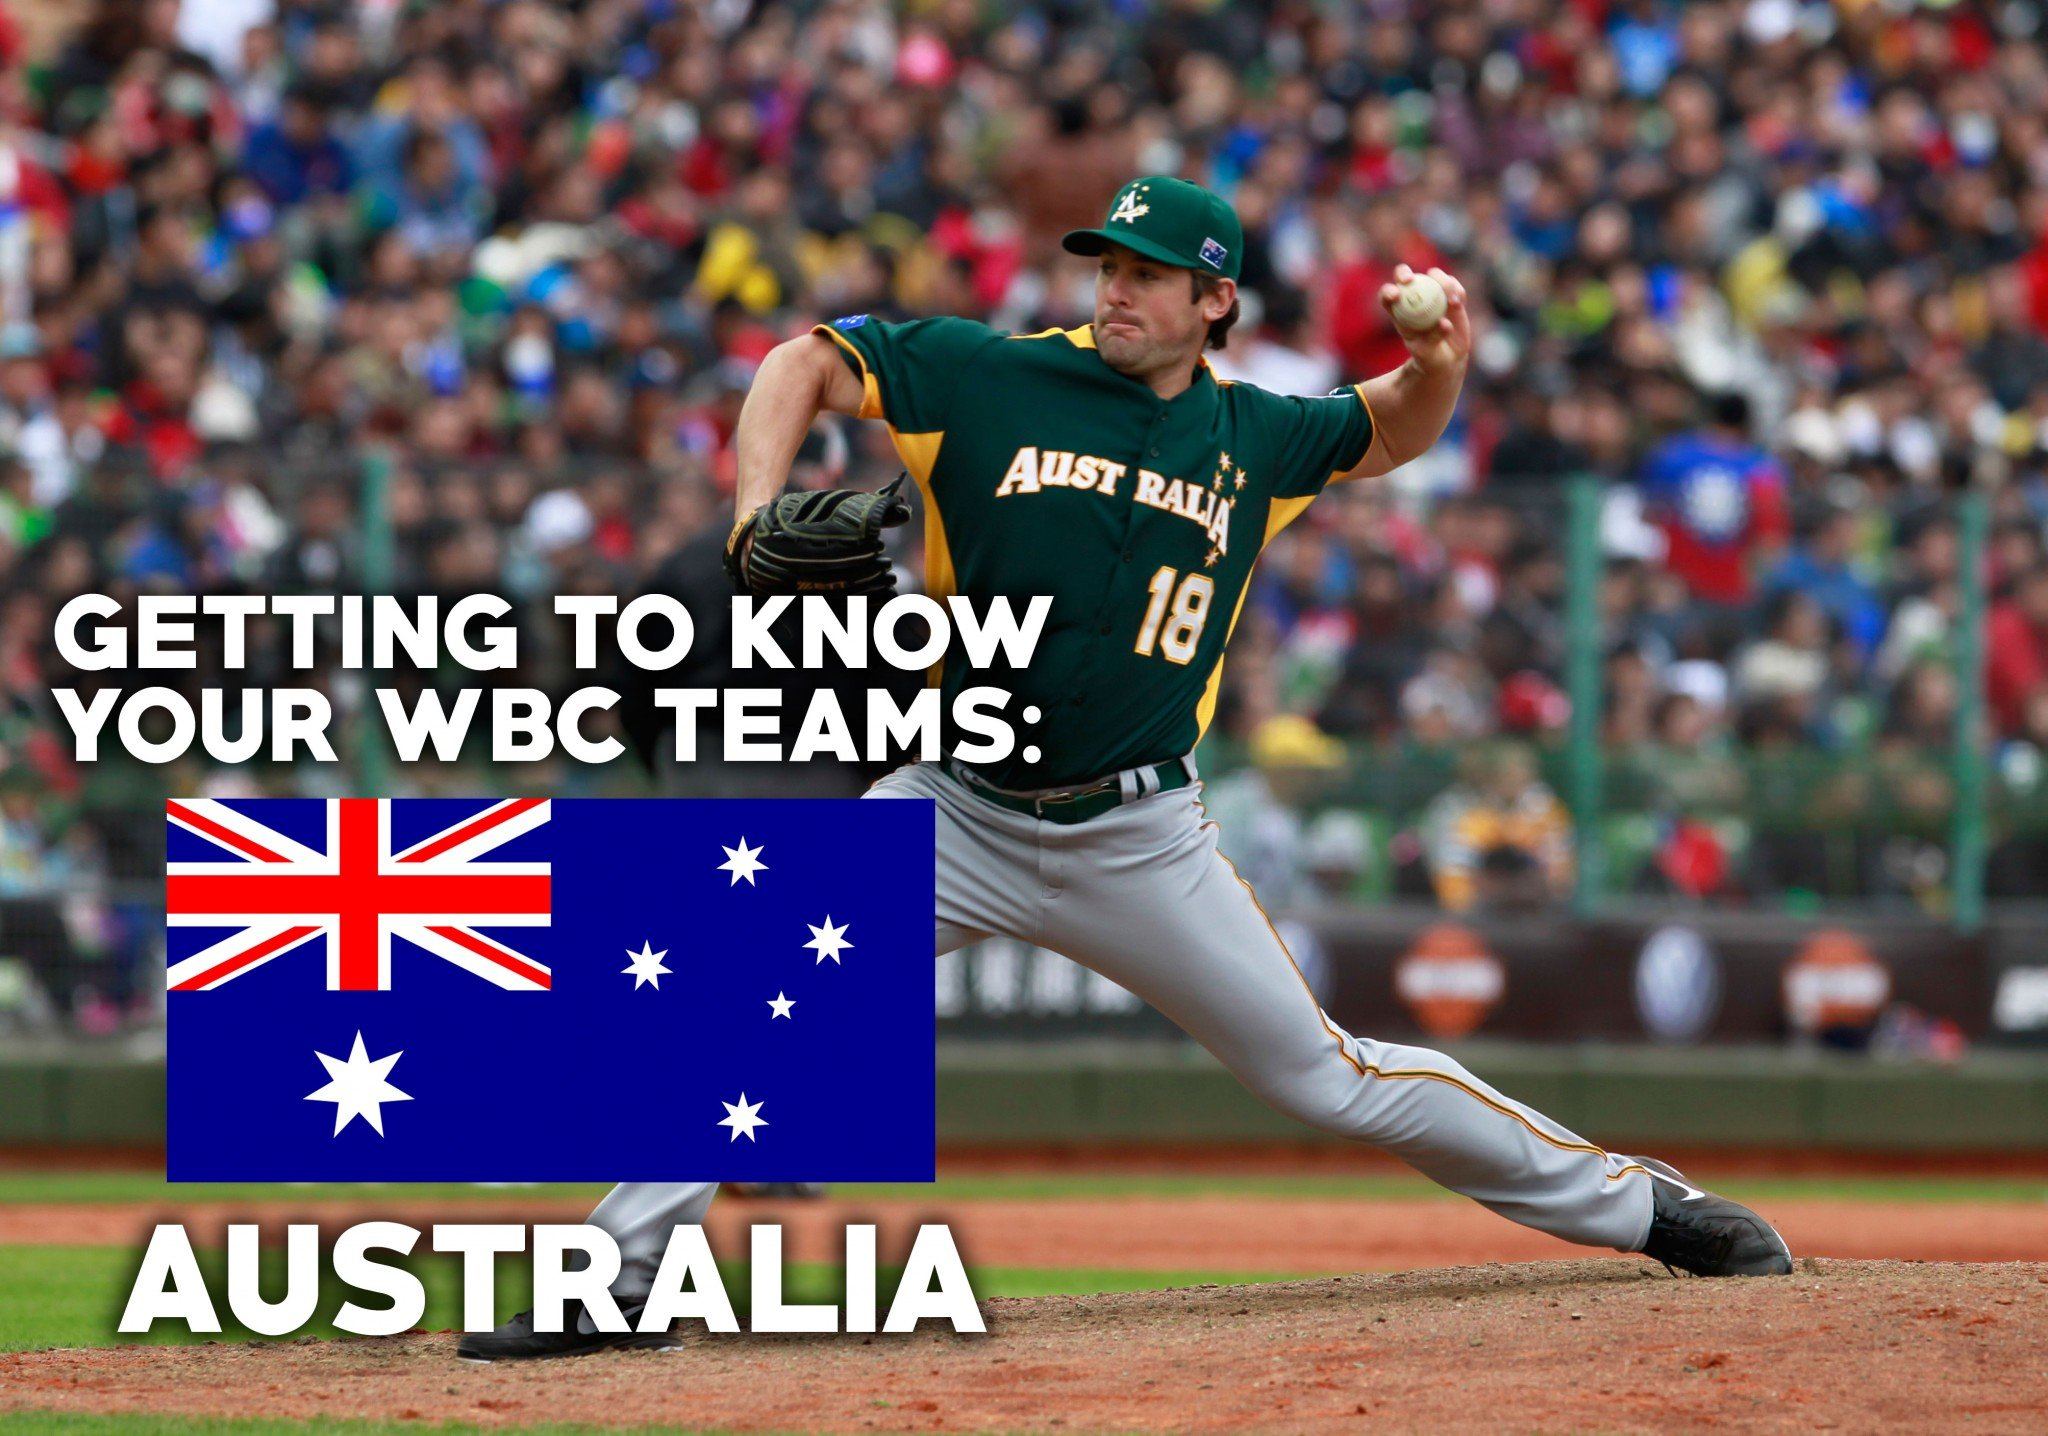 Australia has a chance to play spoiler in the World Baseball Classic. (AP)